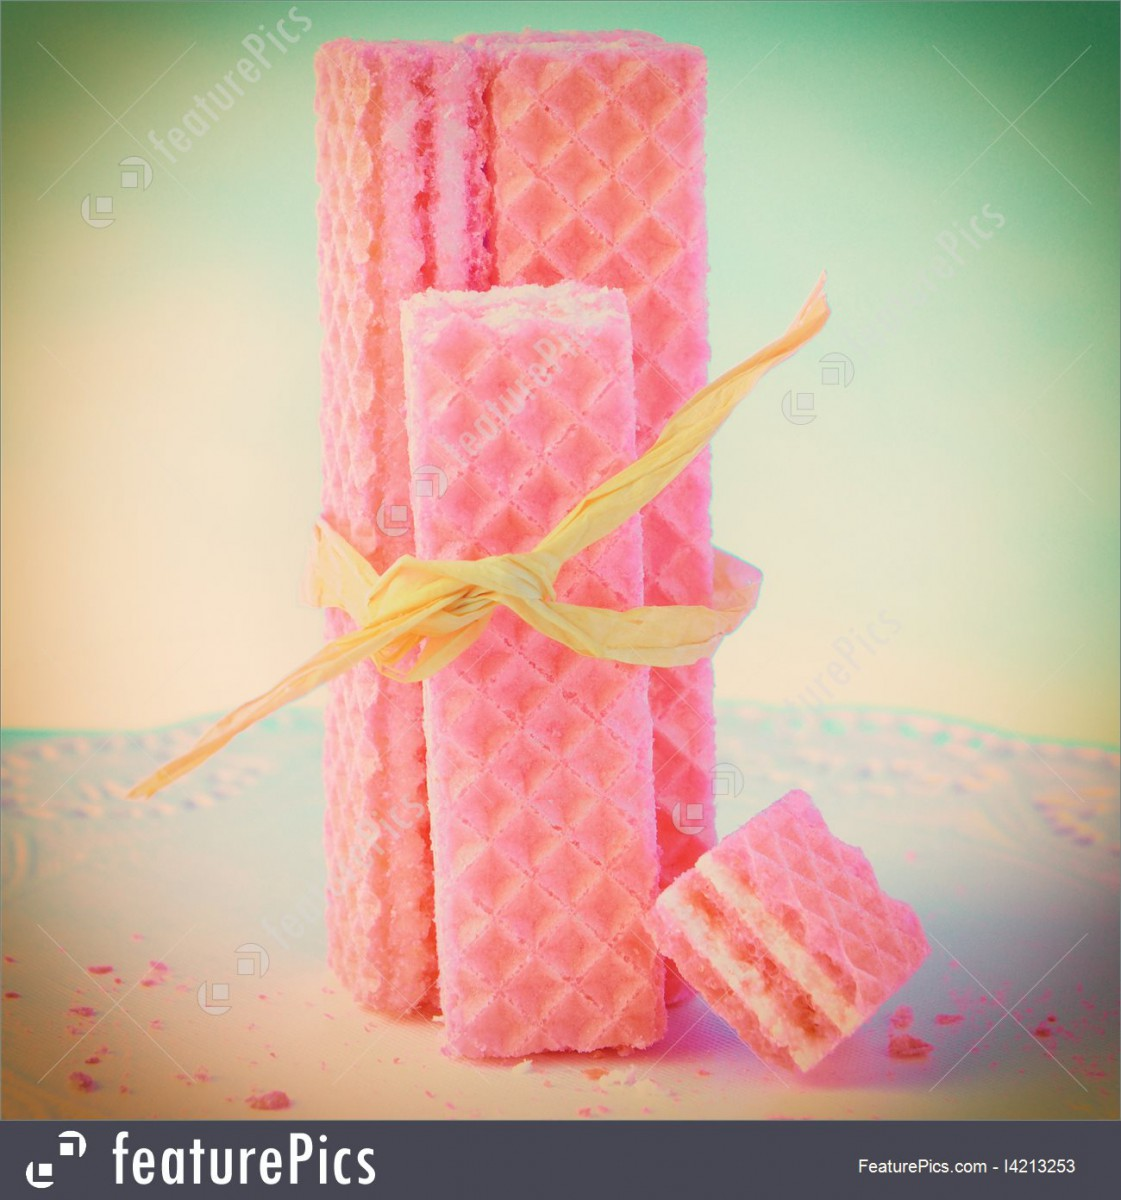 Picture Of Pink Wafer Cookies With Raffia